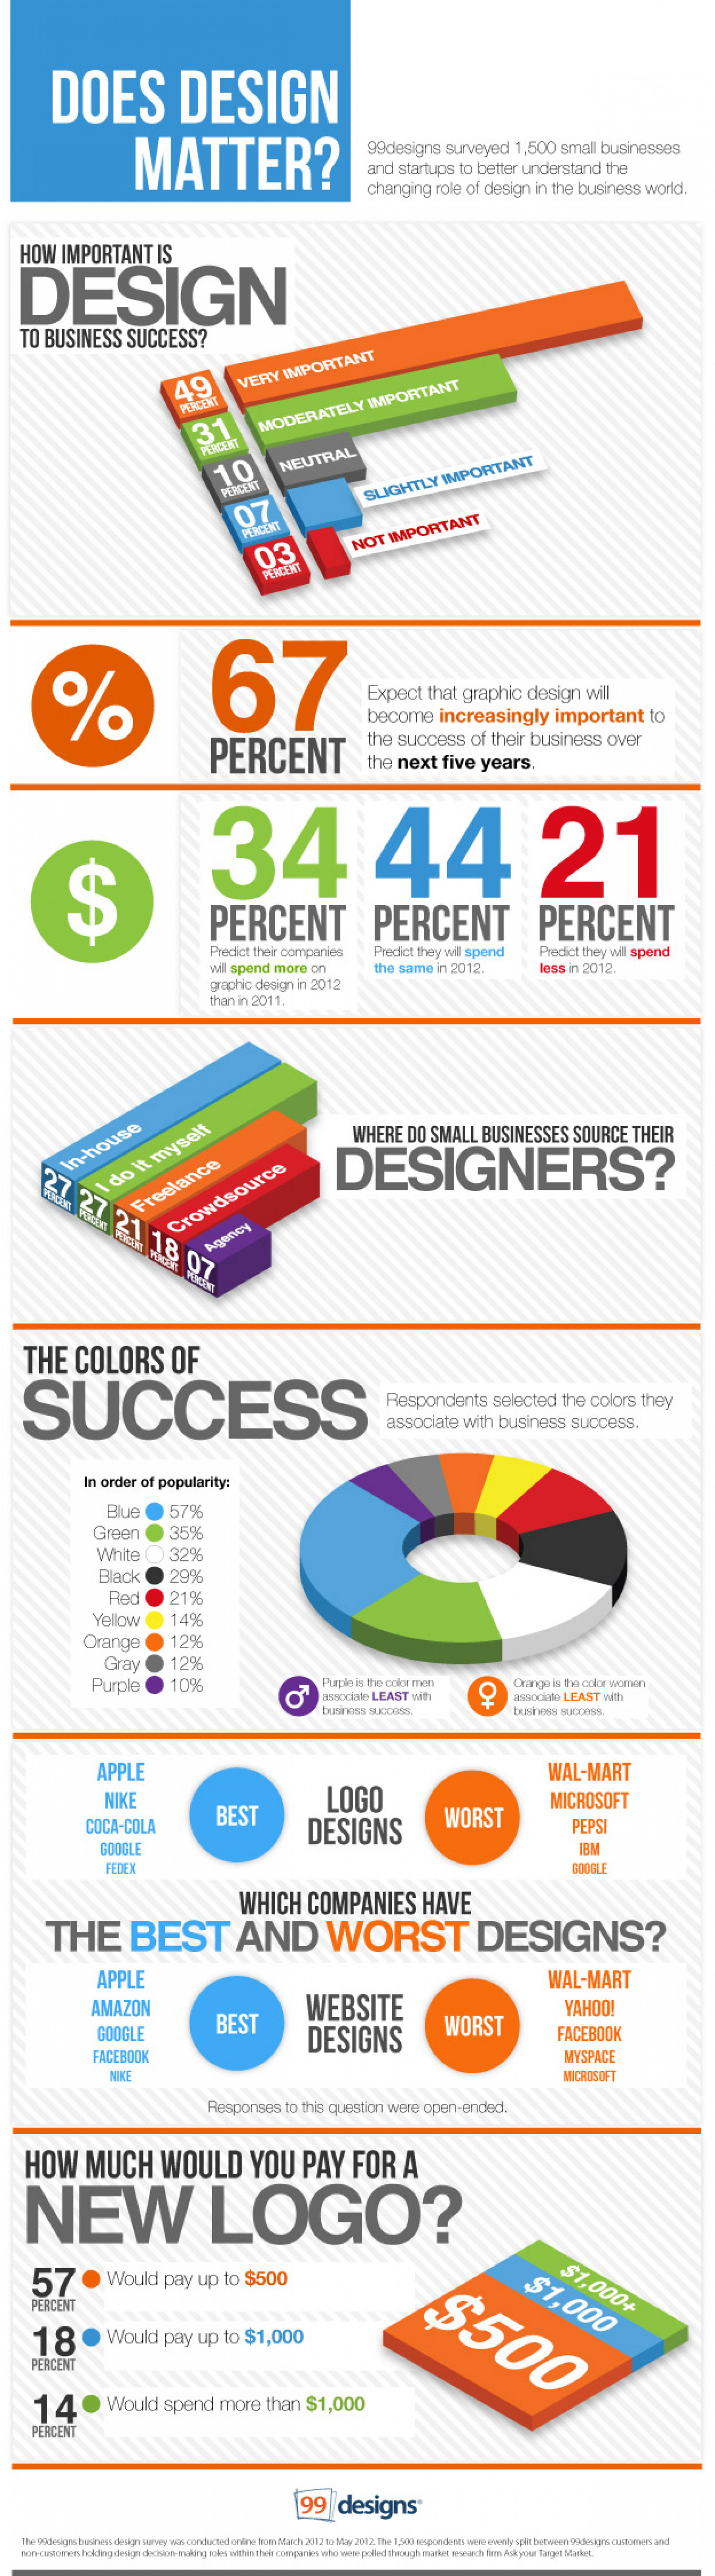 Does Design Matter Infographic